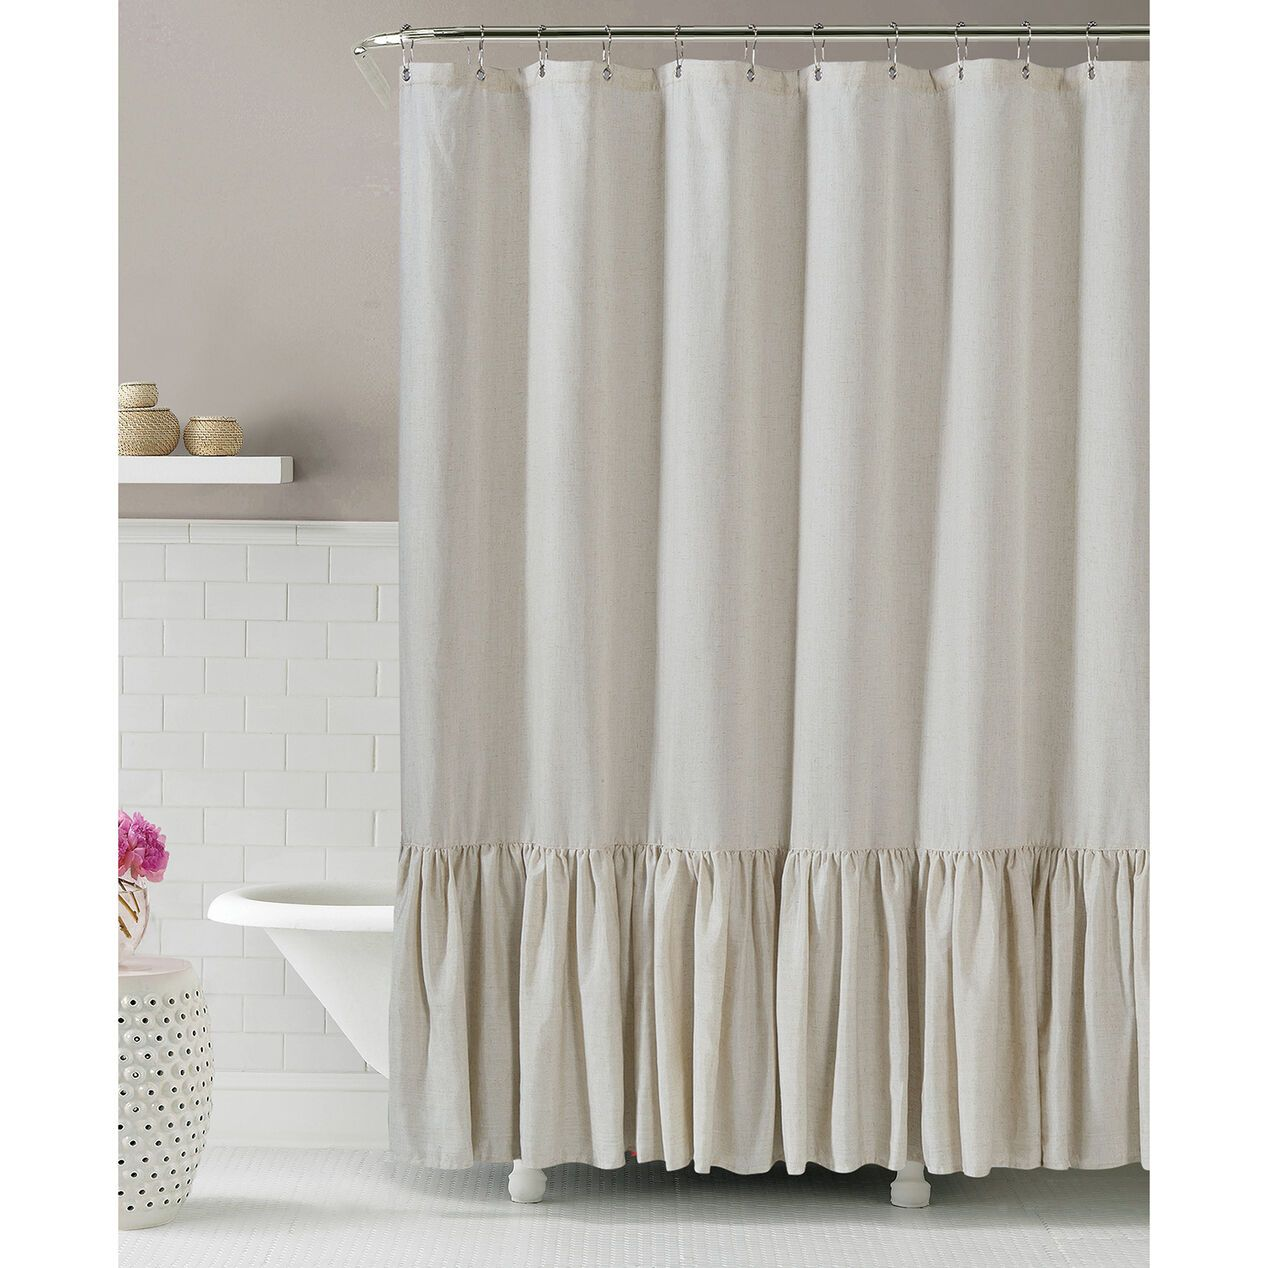 Gabriella Natural Linen Shower Curtain In 2020 Ruffle Shower Curtains Shabby Chic Bathroom Chic Bathrooms